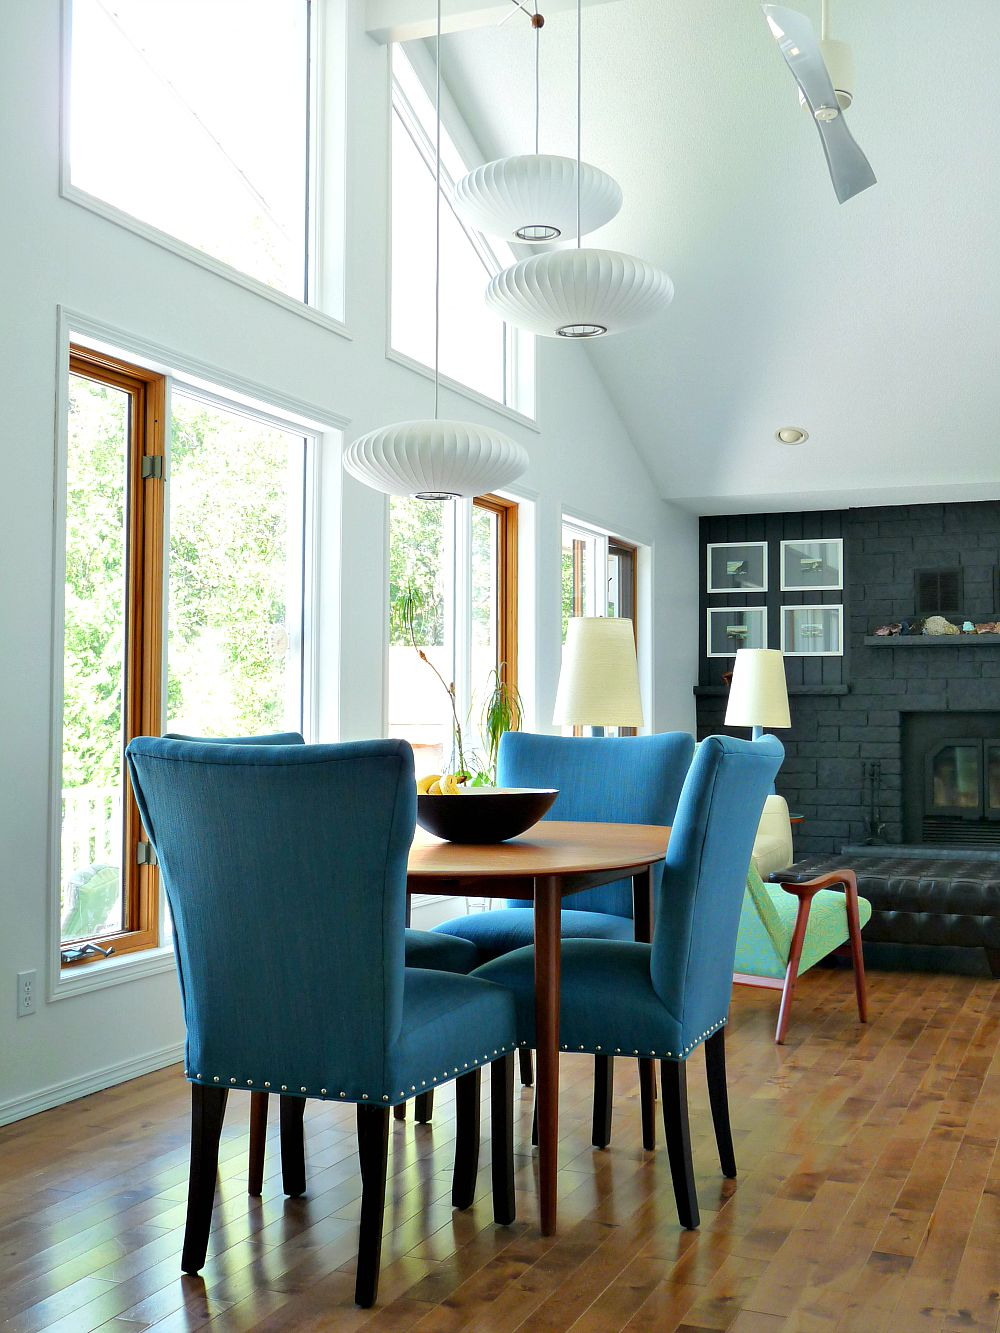 teal colored chairs harmony high chair recall new blue tweed dining room update the dans le and modernica bubble light